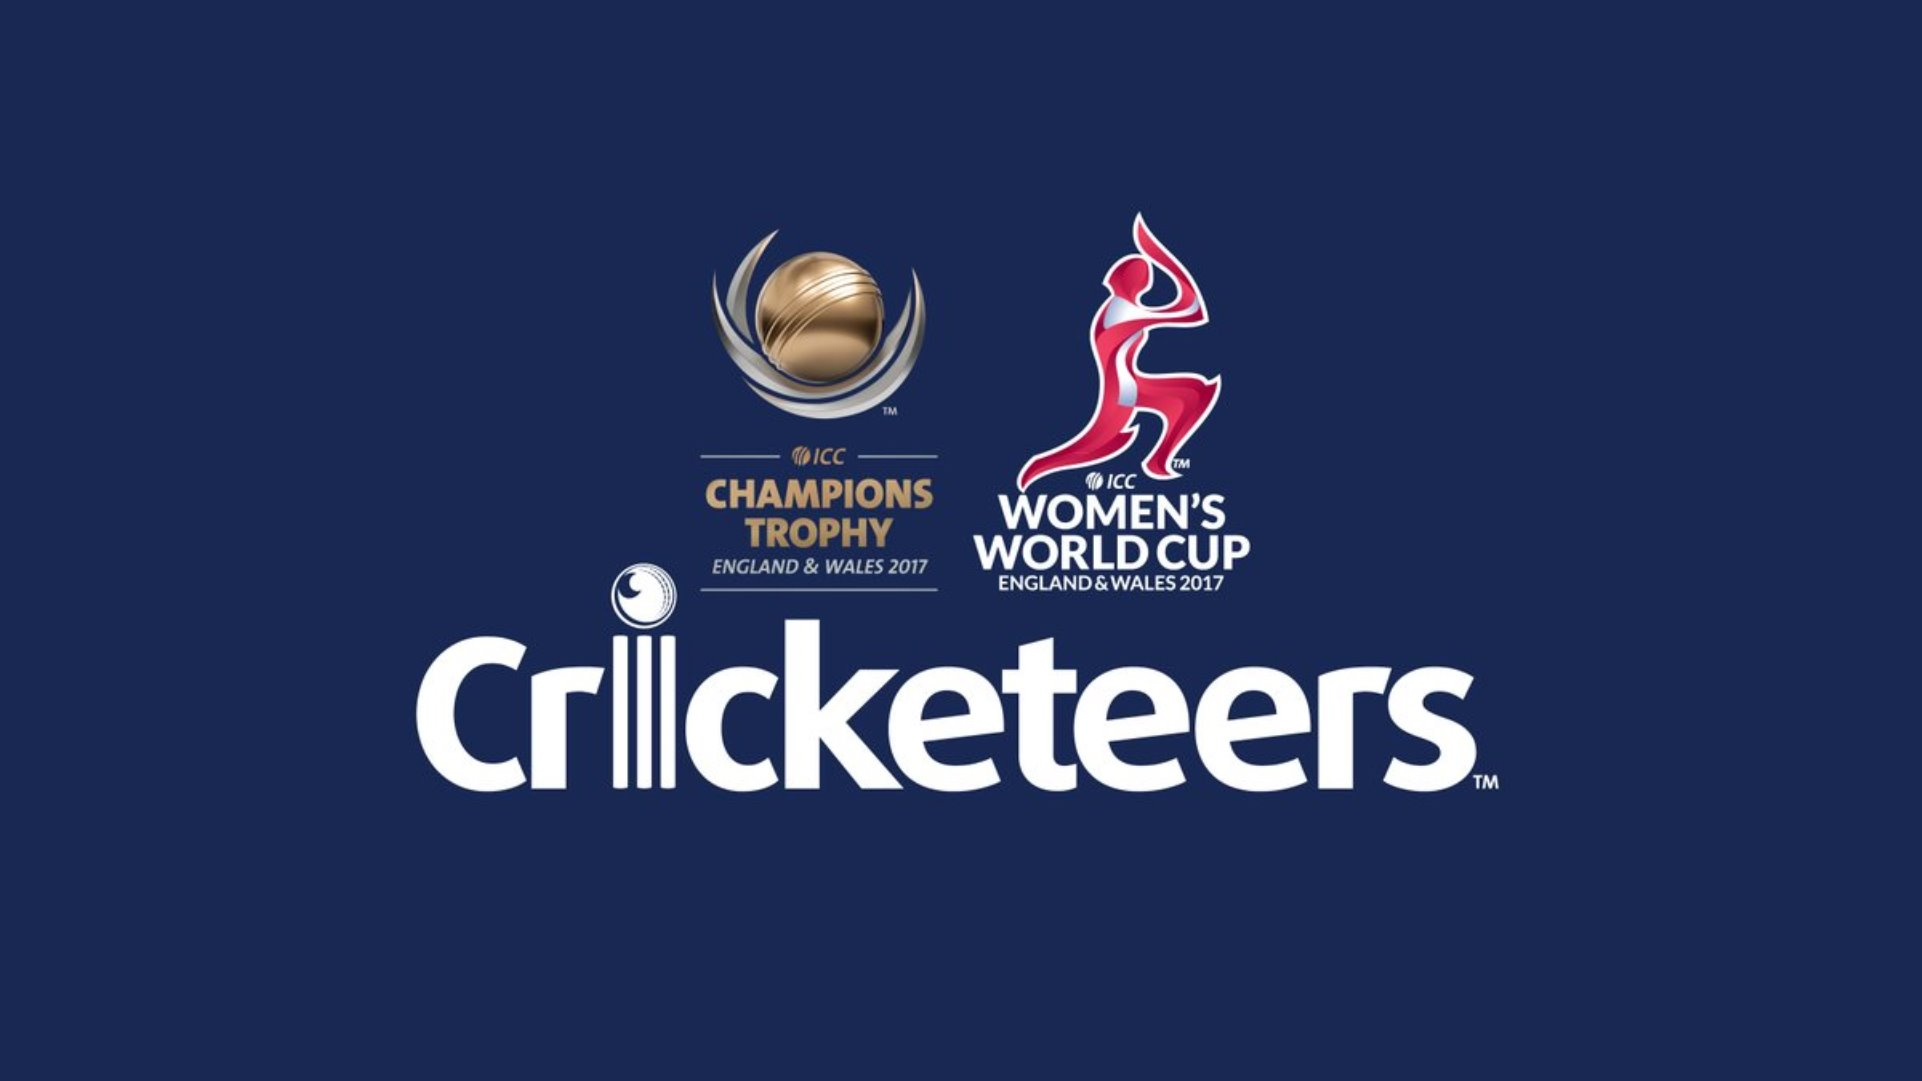 Volunteer at the ICC Champions Trophy and Women's World Cup